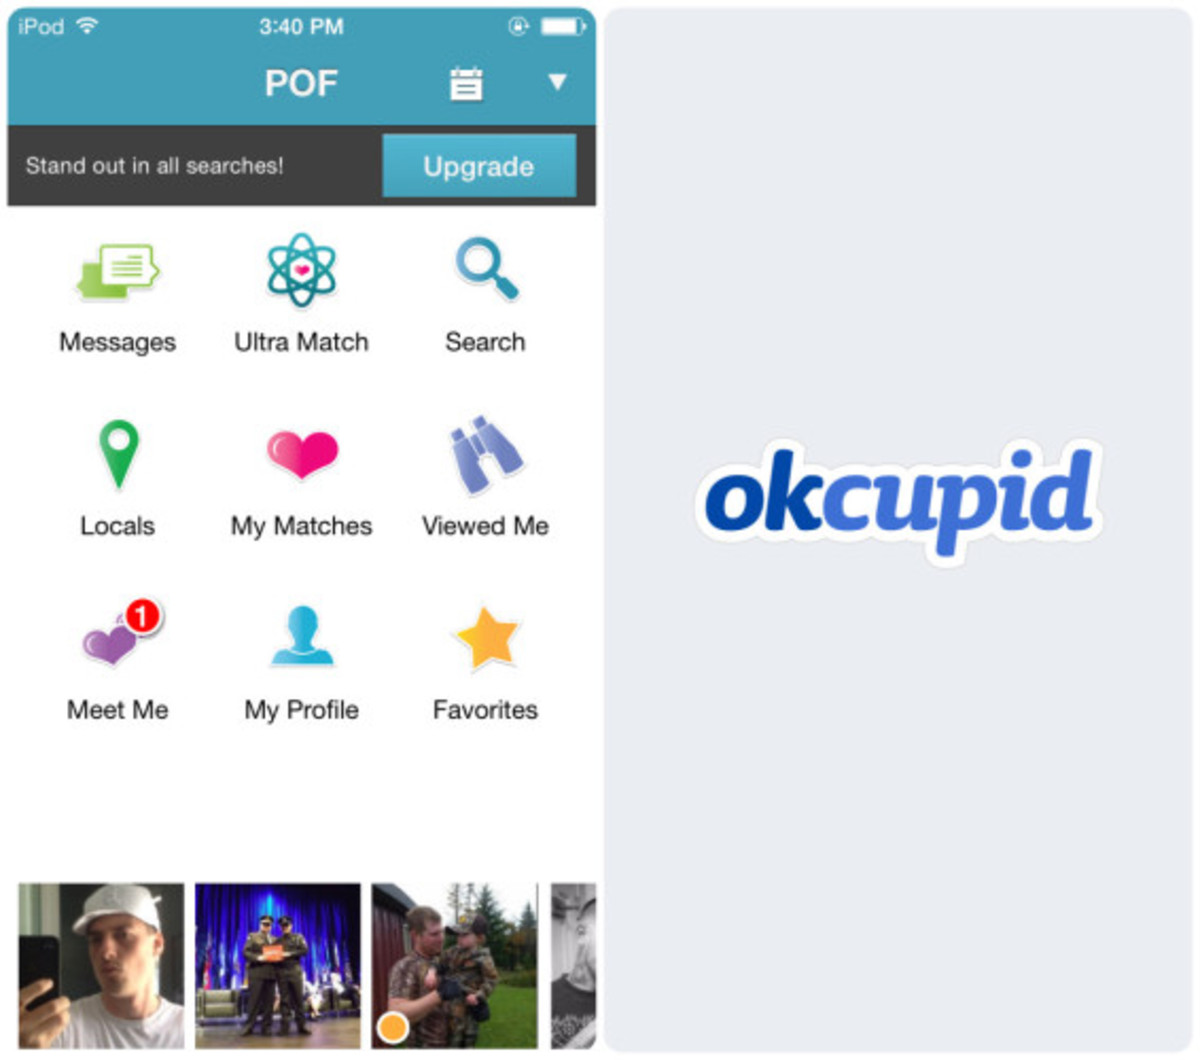 Which Dating App Is Better: Plenty of Fish or Okcupid?